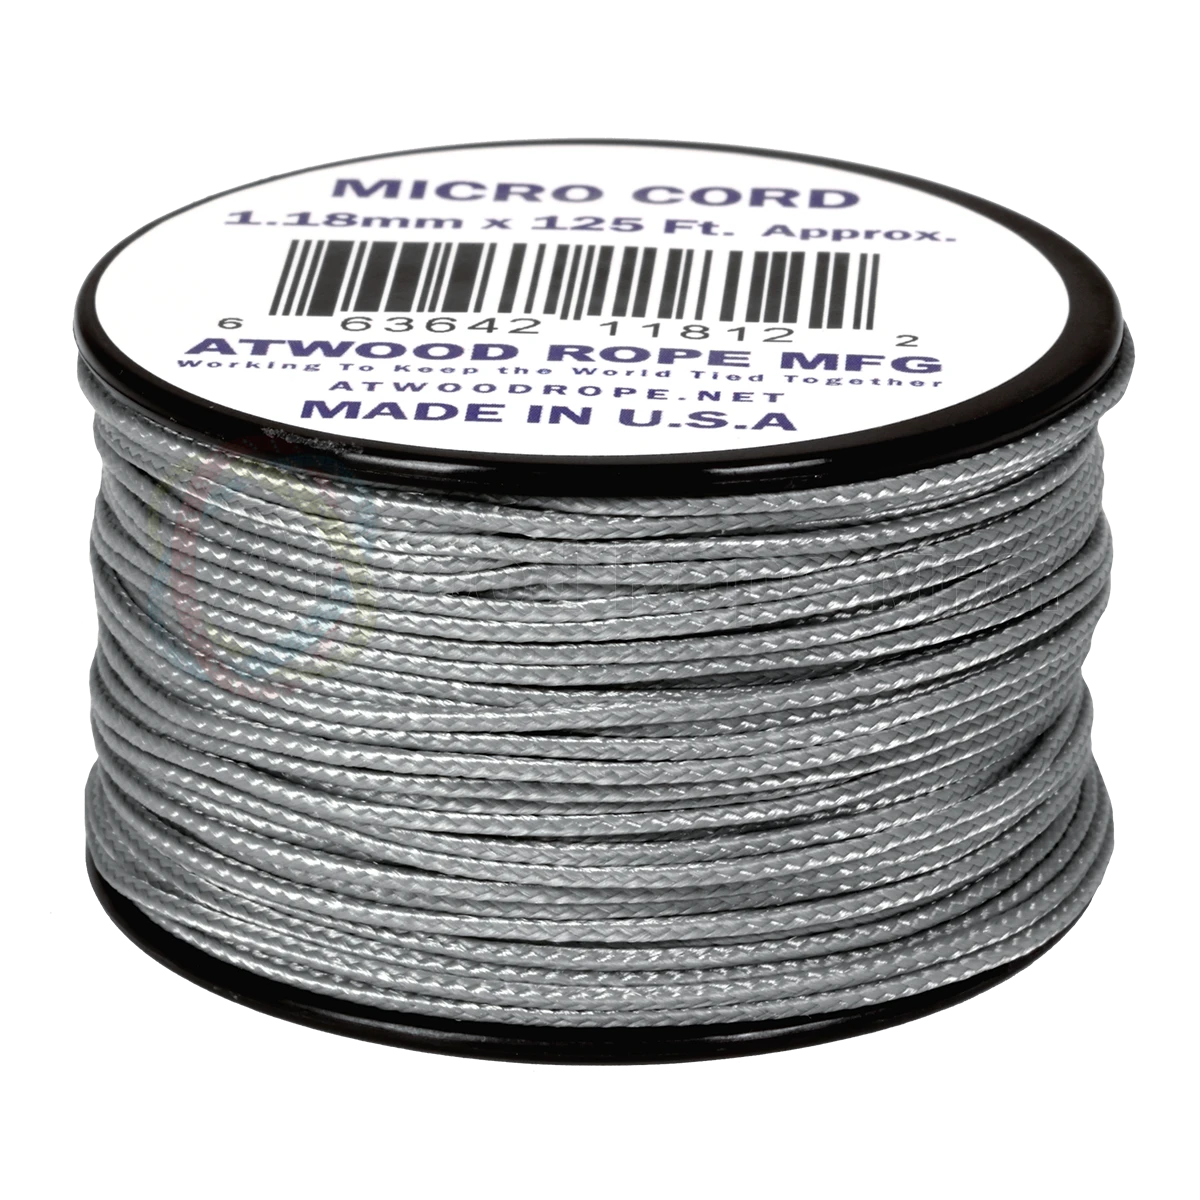 Dây Micro Cord 1.18mm – 100ft – Grey